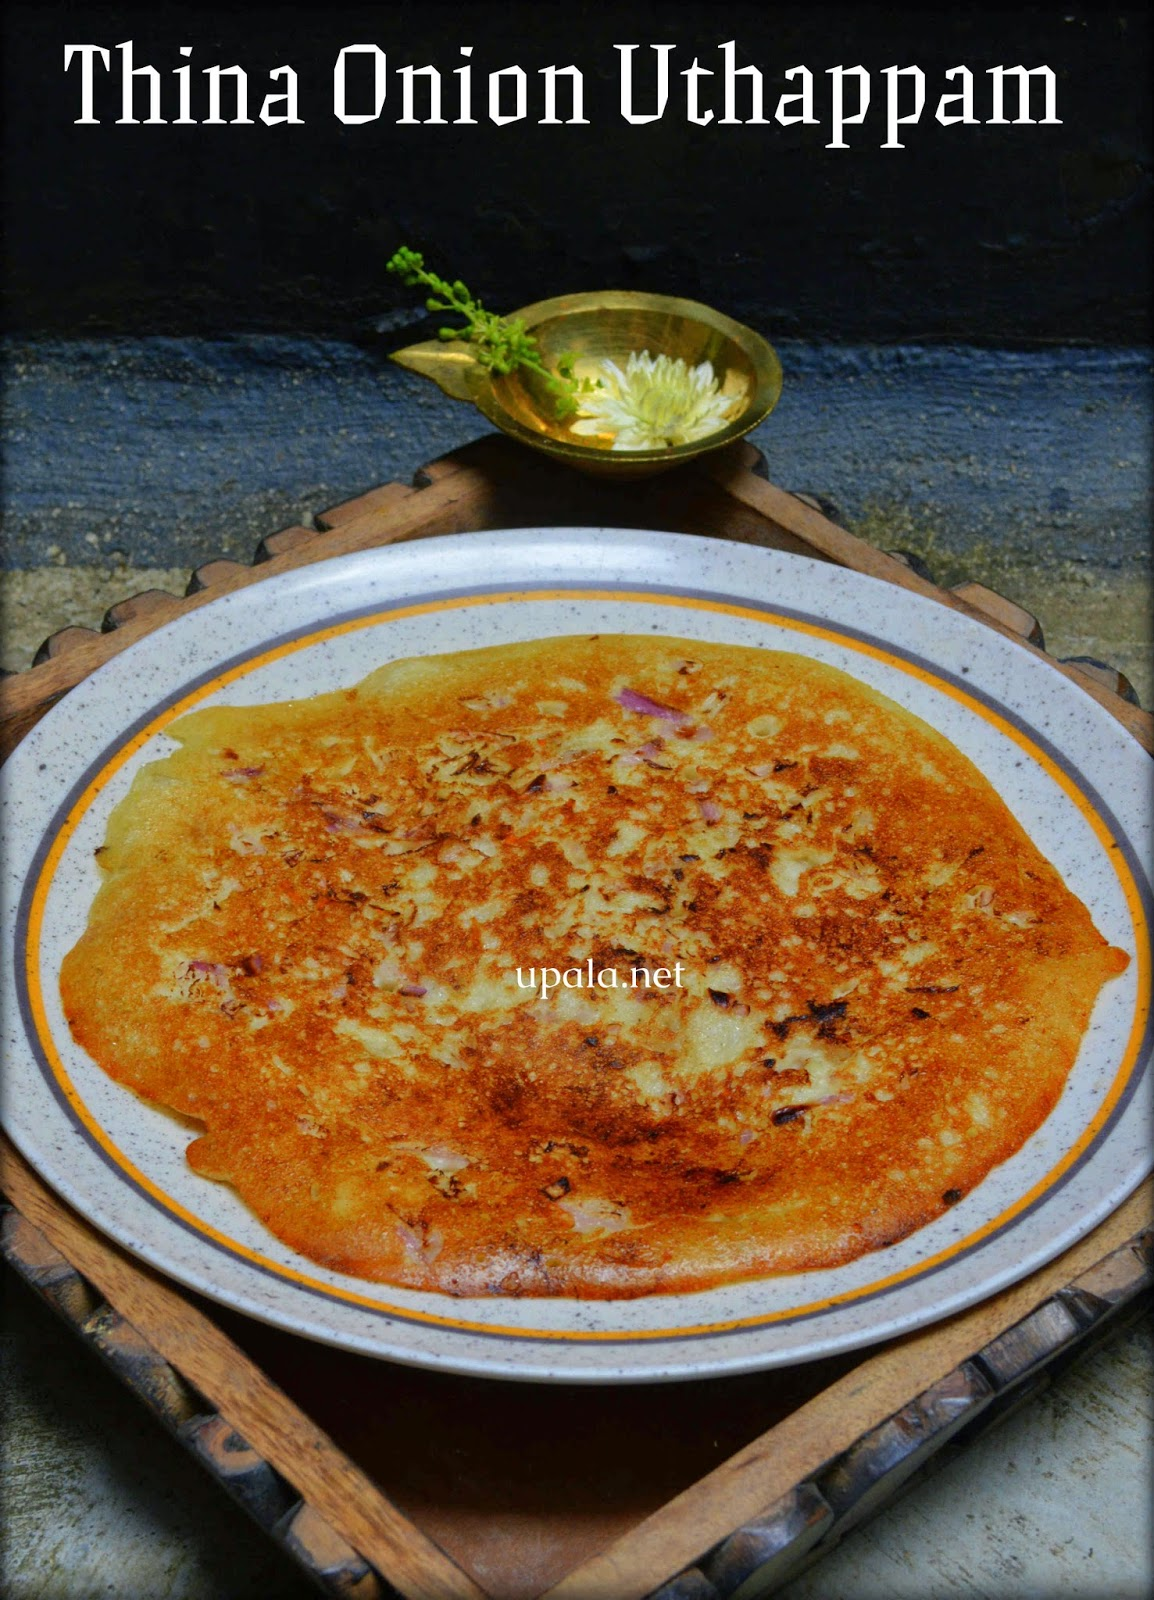 Thinai Onion Uthappam